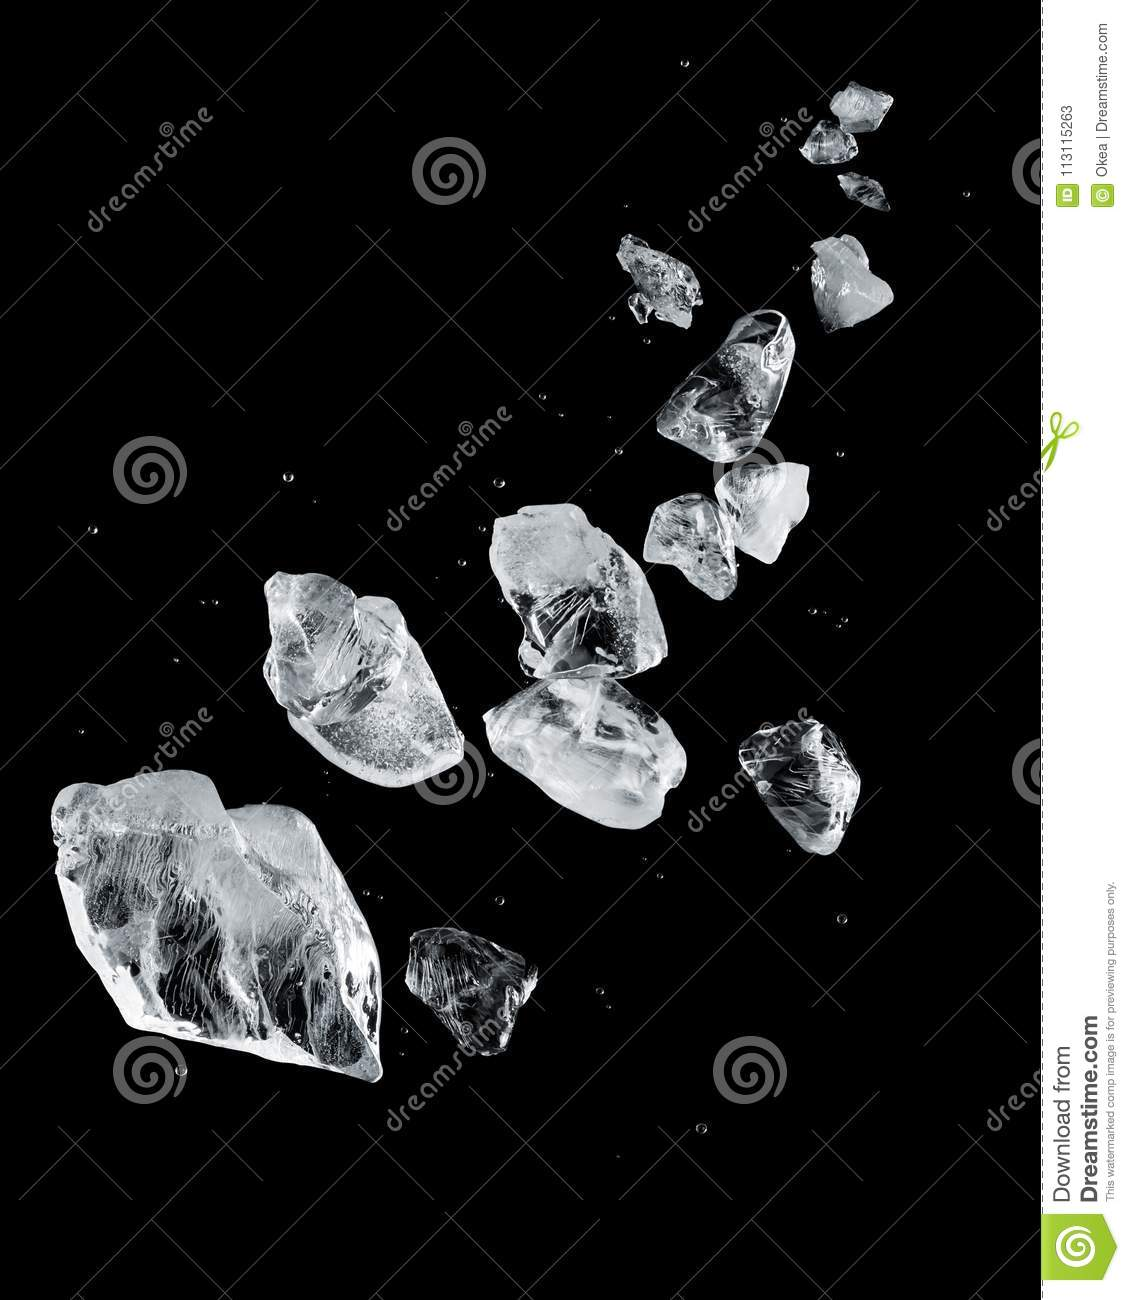 Download Ice stock image. Image of cold, block, background, abstract - 113115263